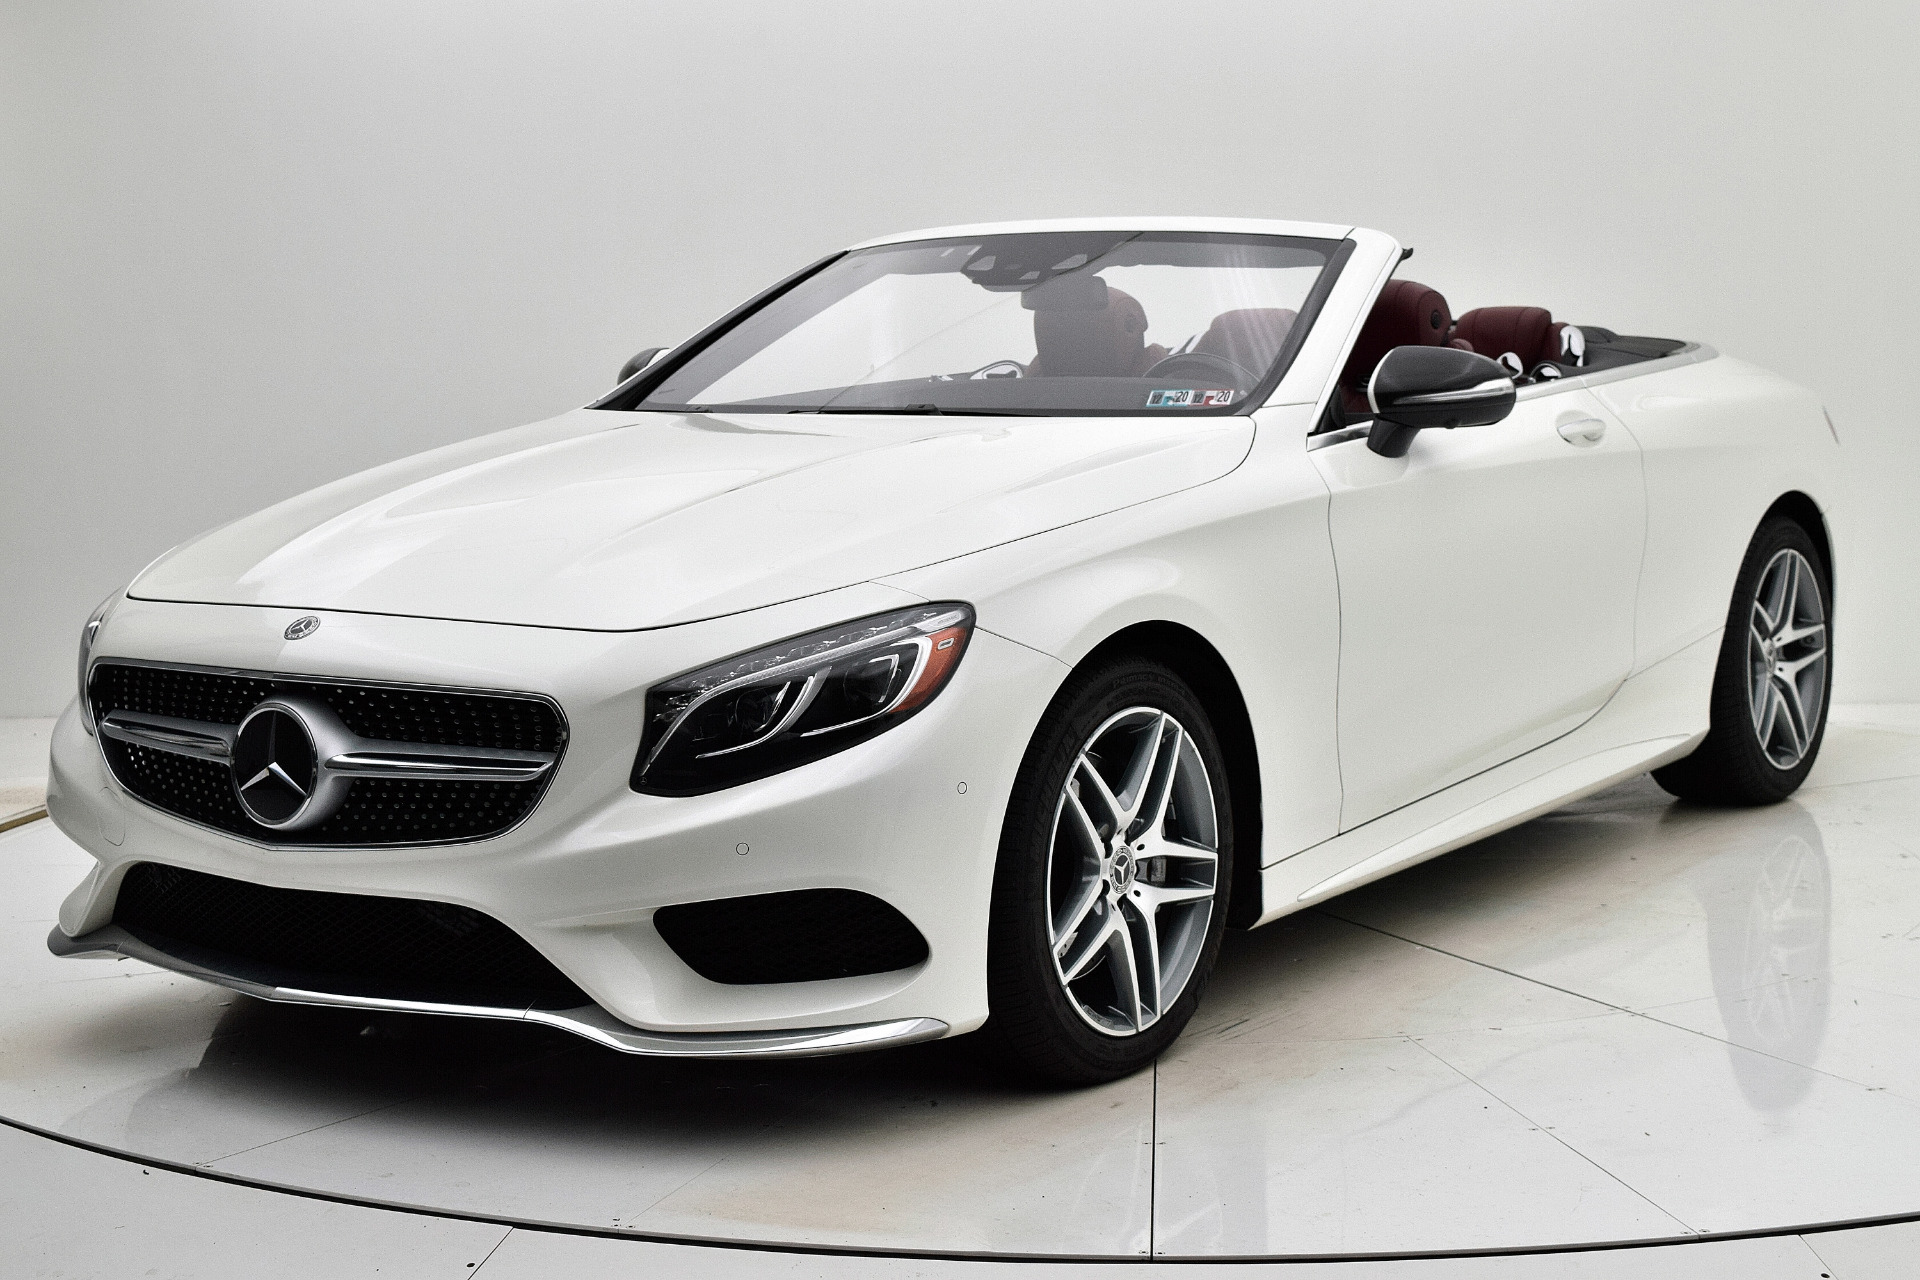 Used 2017 Mercedes-Benz S-Class S 550 Cabriolet for sale Sold at F.C. Kerbeck Aston Martin in Palmyra NJ 08065 2